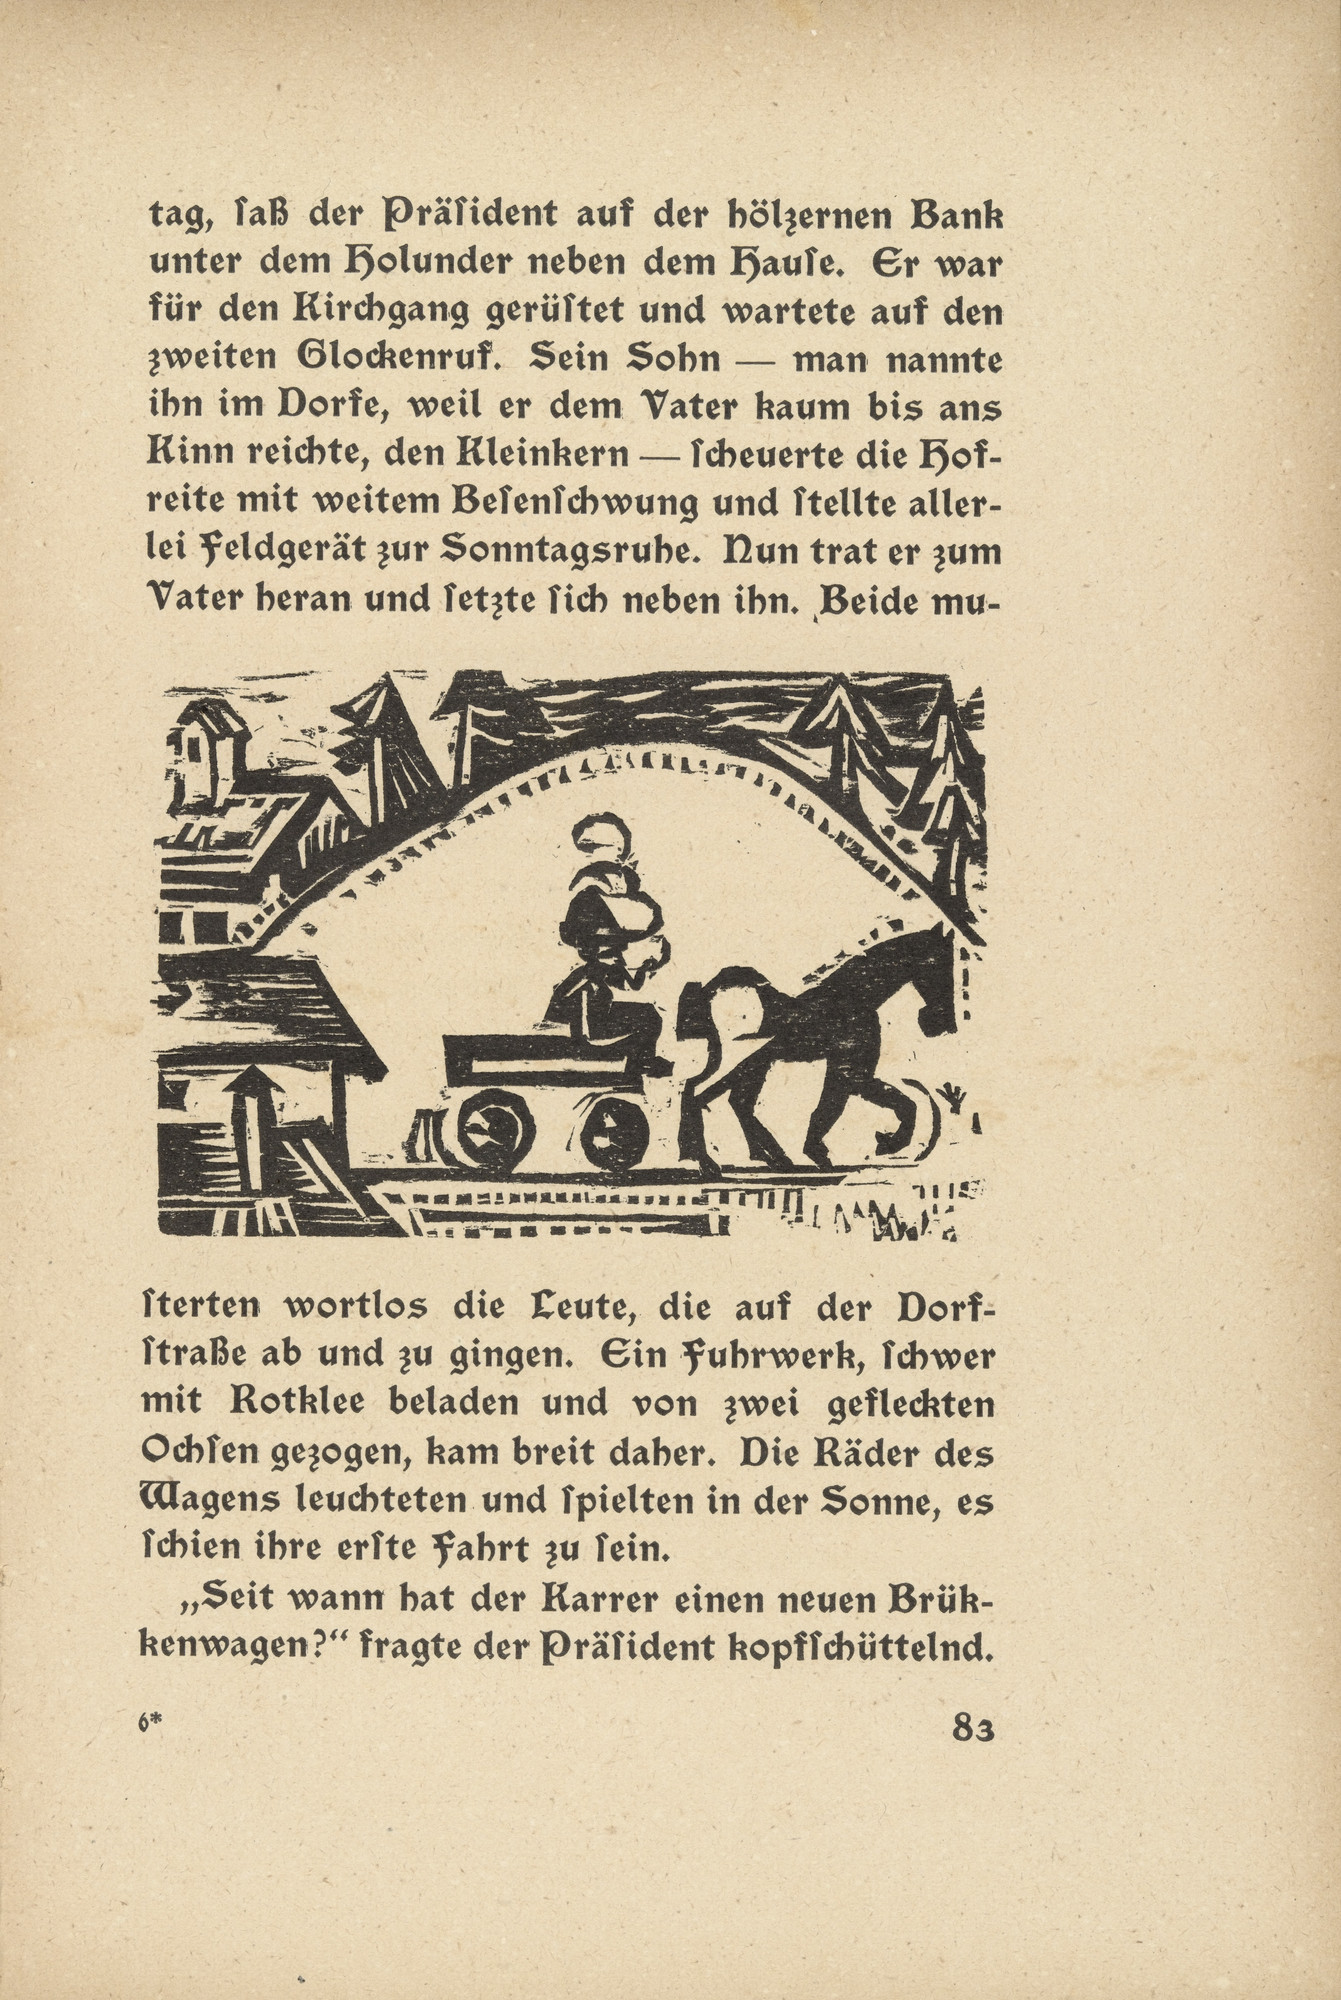 Ernst Ludwig Kirchner. Downfall: The Horse Cart (Niedergang: Pferdefuhrwerk) (in-text plate, page 83) from Neben der Heerstrasse (Off the Main Road). 1923